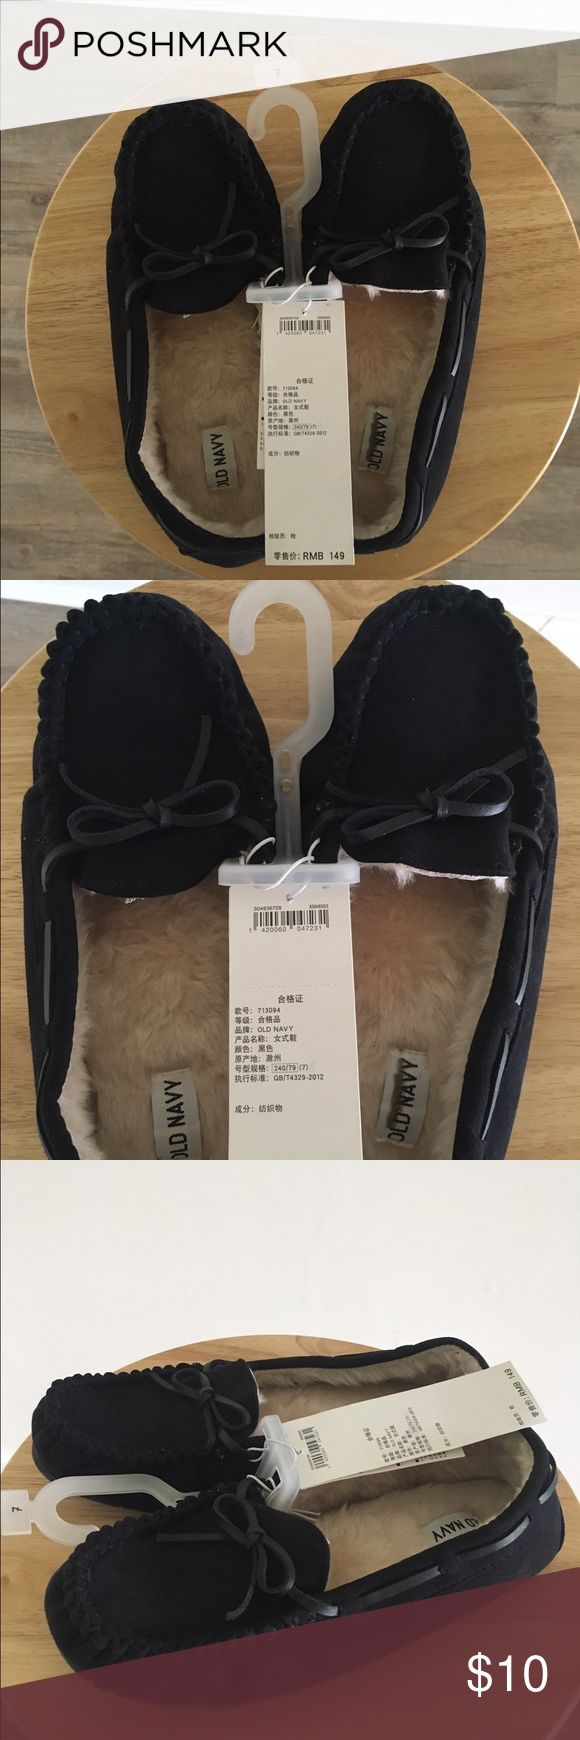 NWT Old Navy Women's Black Moccasin Style Slippers New with tags! Gap women's black fuzzy warm moccasin style slippers size 7. Fit true to size. Old Navy Shoes Slippers